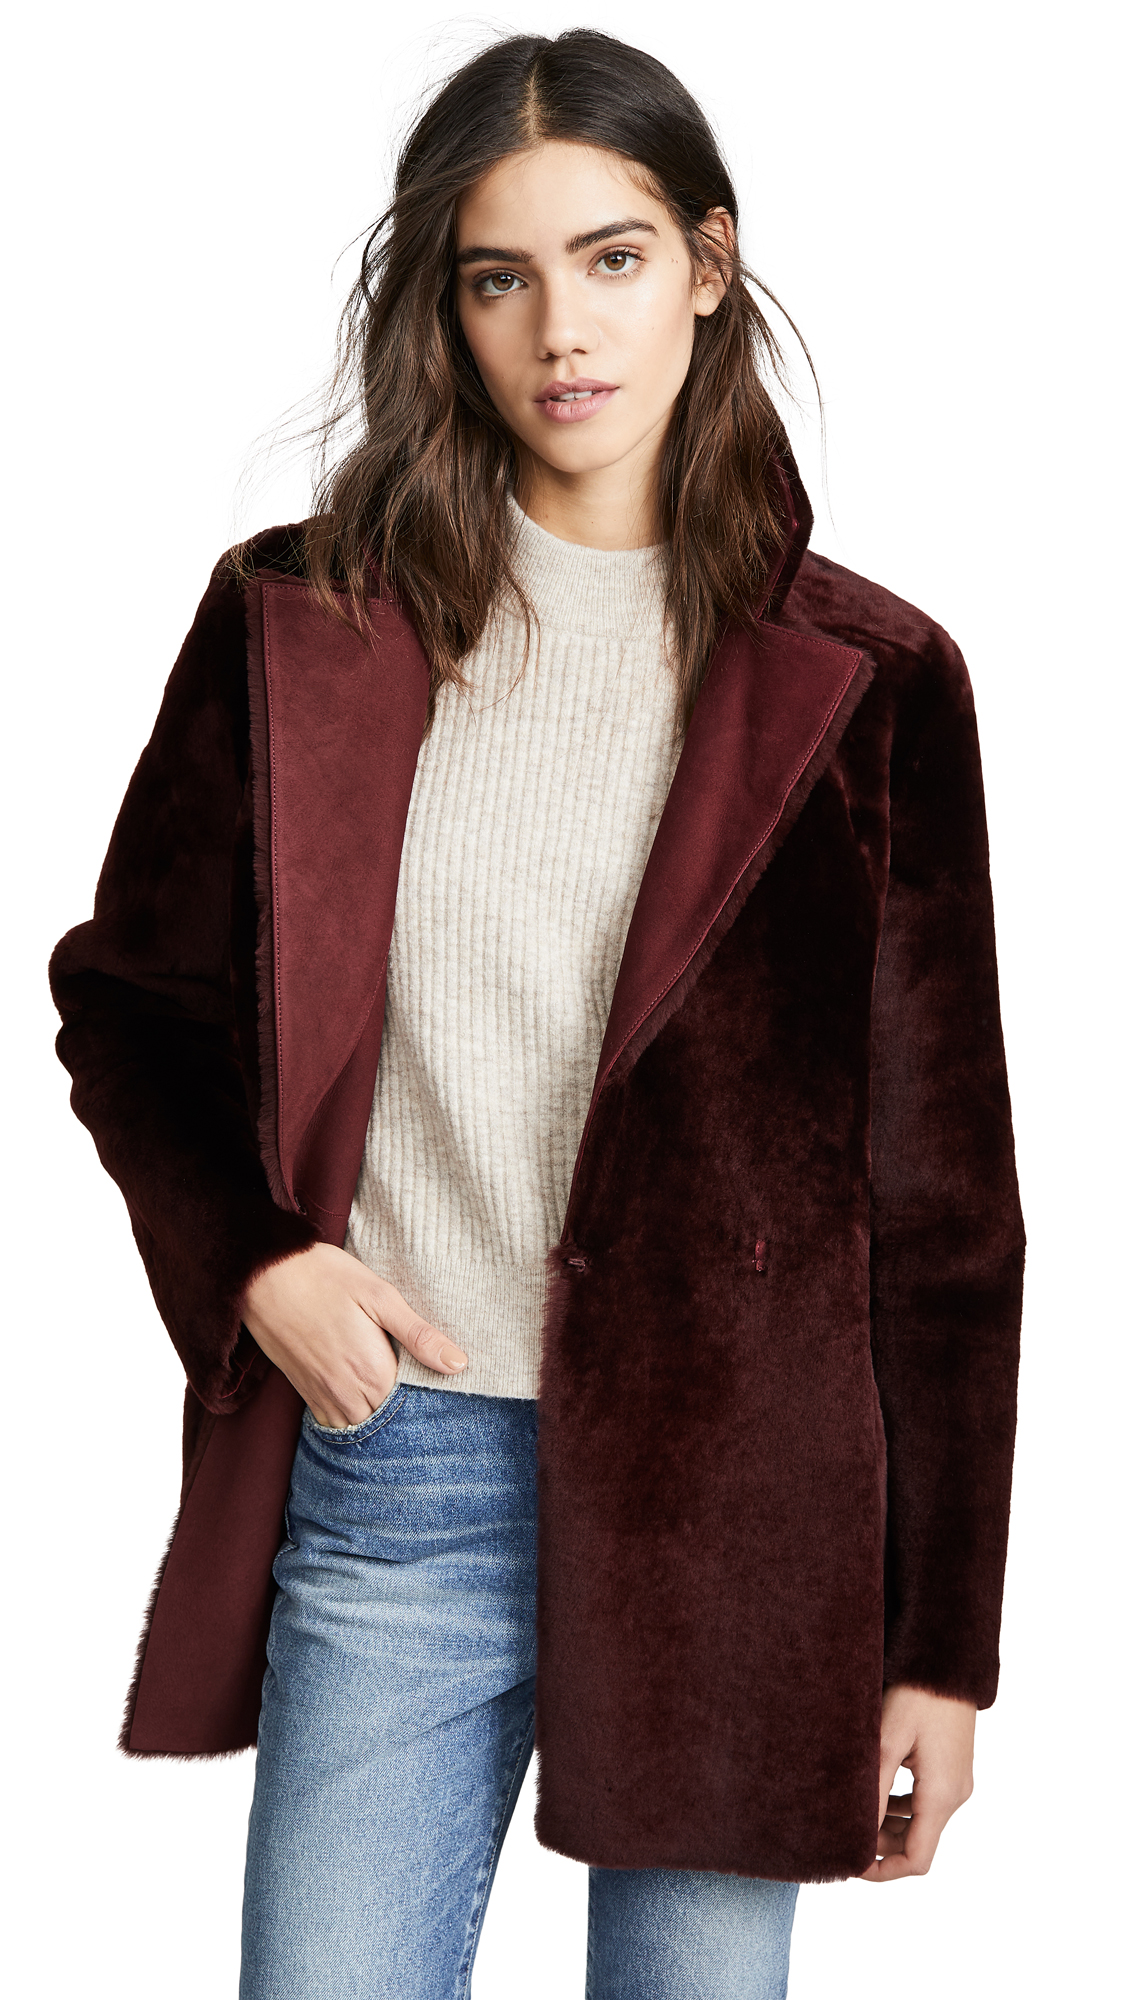 Theory Clairene Coat - Deep Mulberry